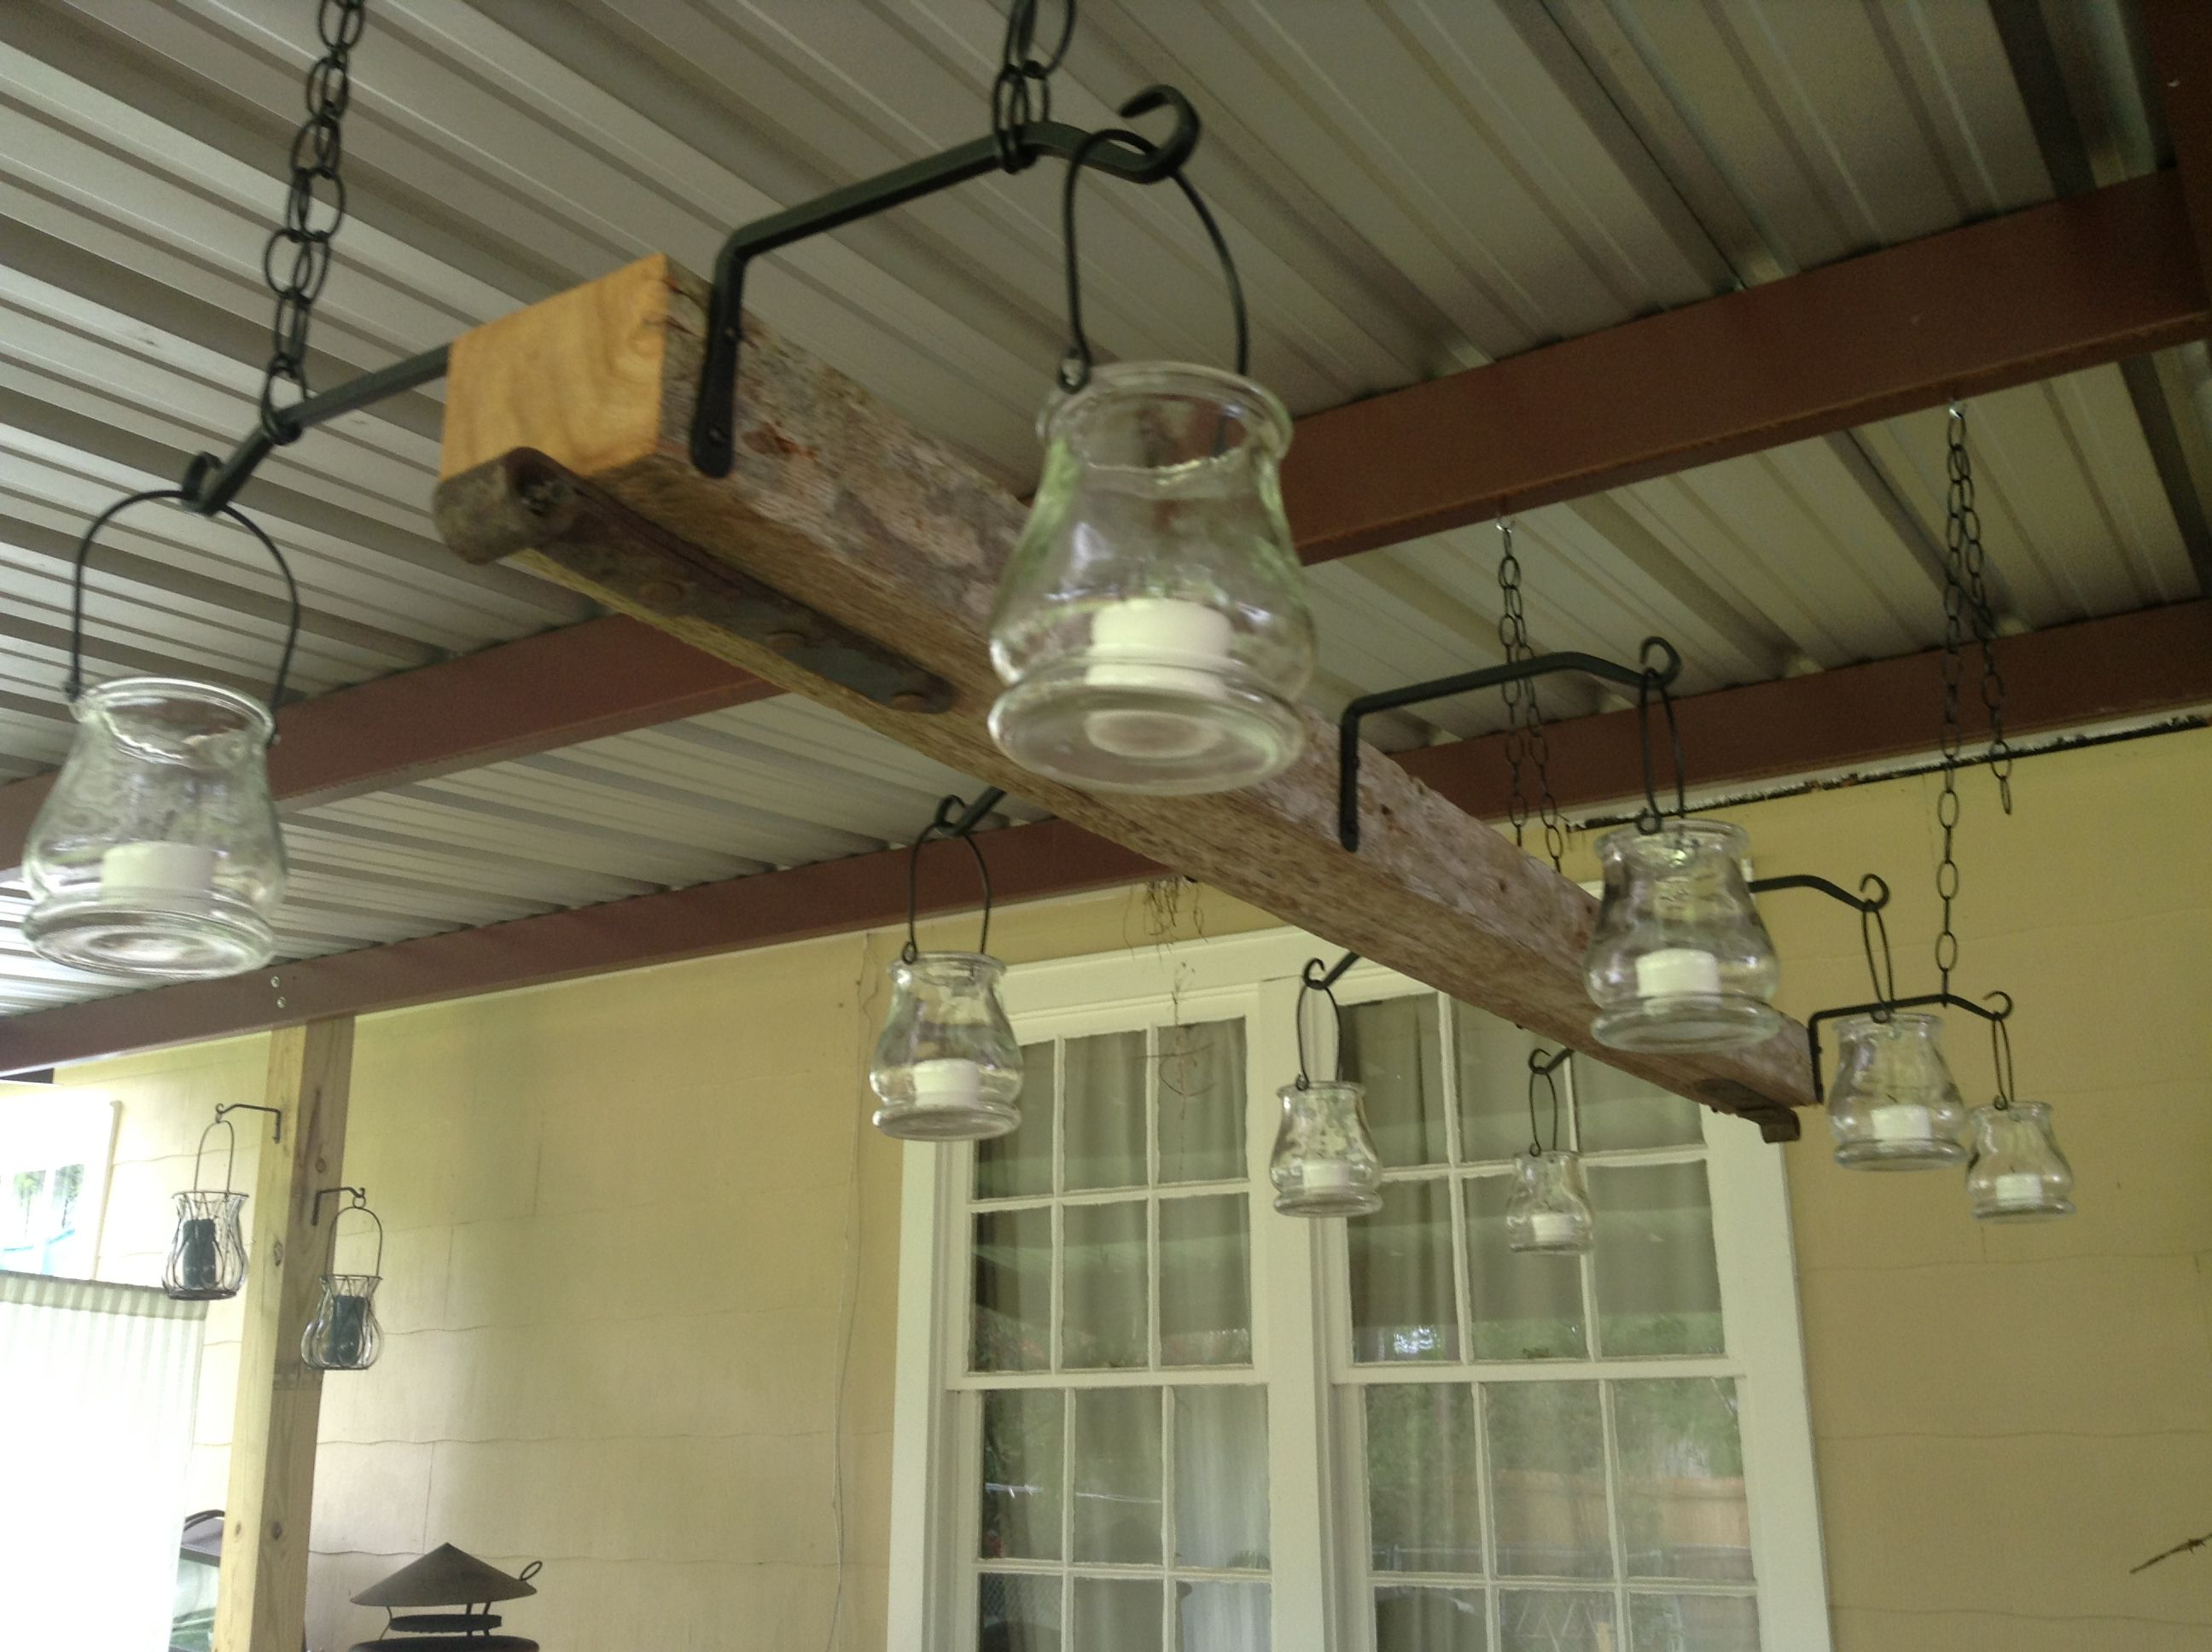 Outdoor Light Fixture We Made Using An Old Fence Post, Plant Holders From Lowe's And Mini